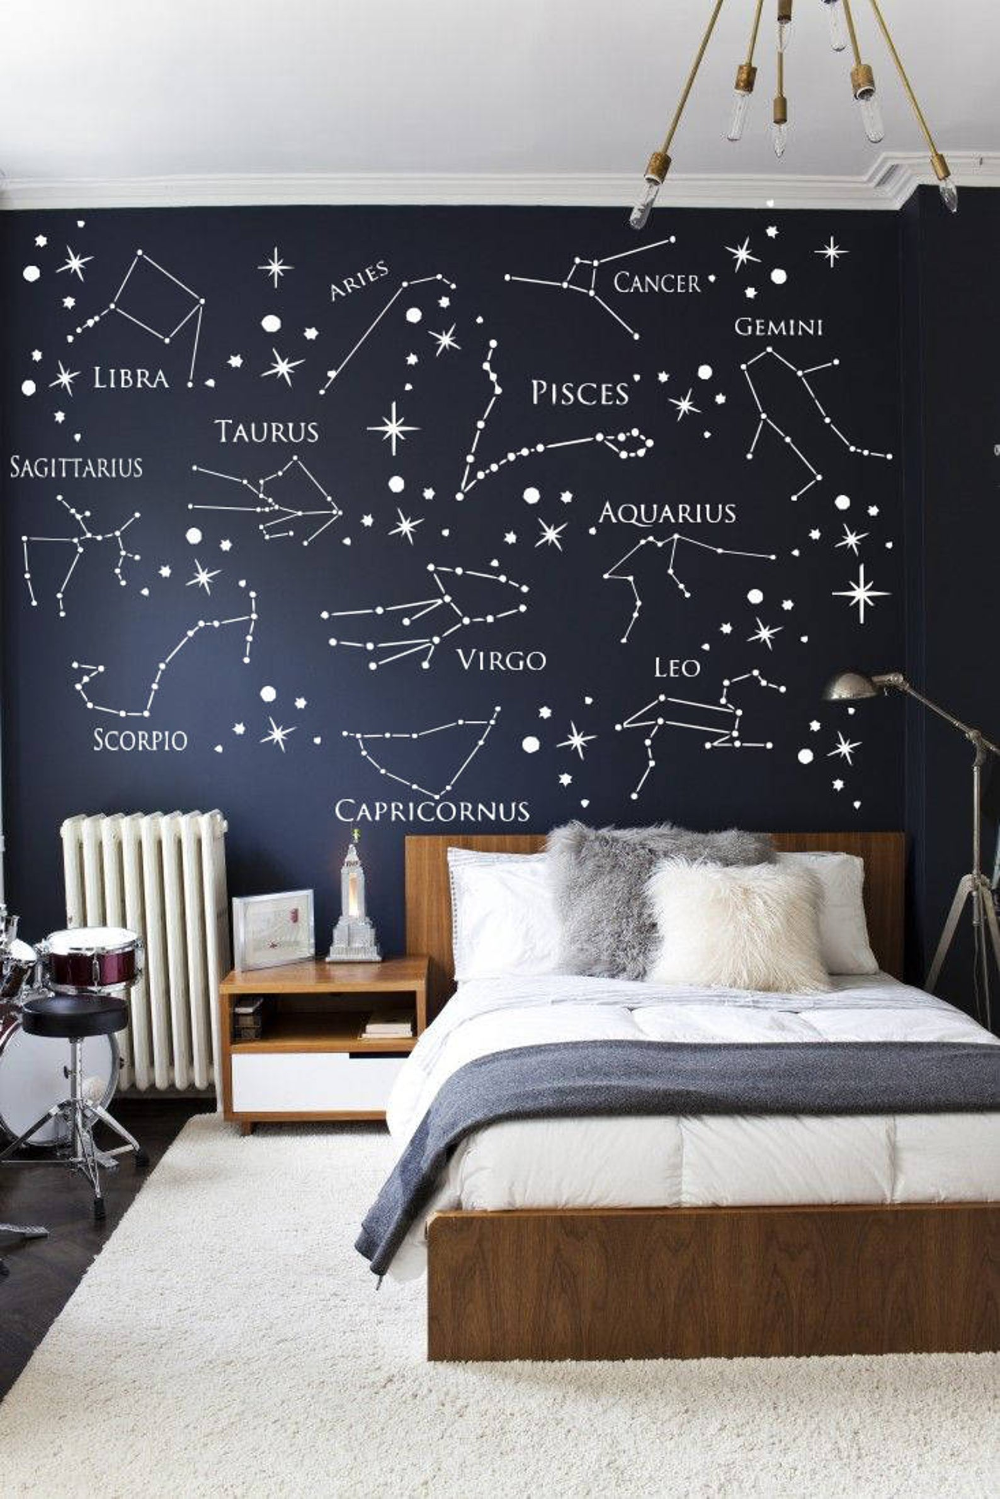 Wall Decal Zodiac Constellation Virgo Decal Leo Decal Pisces Etsy Kids Bedroom Wall Decor Kids Bedroom Walls Wall Decor Bedroom